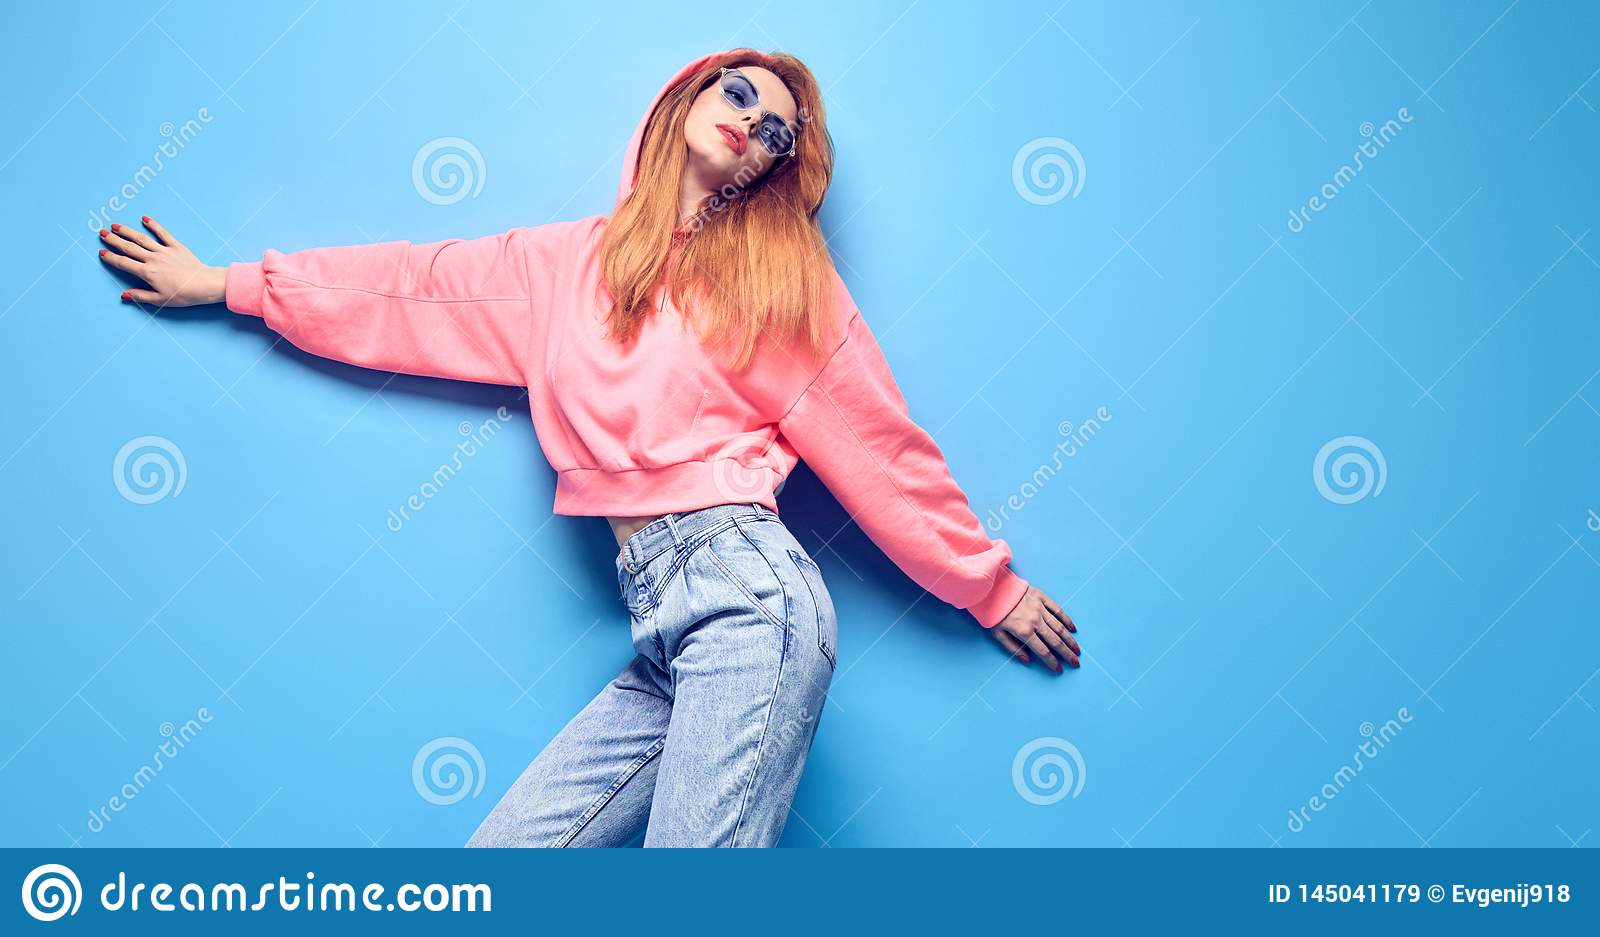 Two Hipster Girl Having Fun In Stylish Neon Outfit Stock